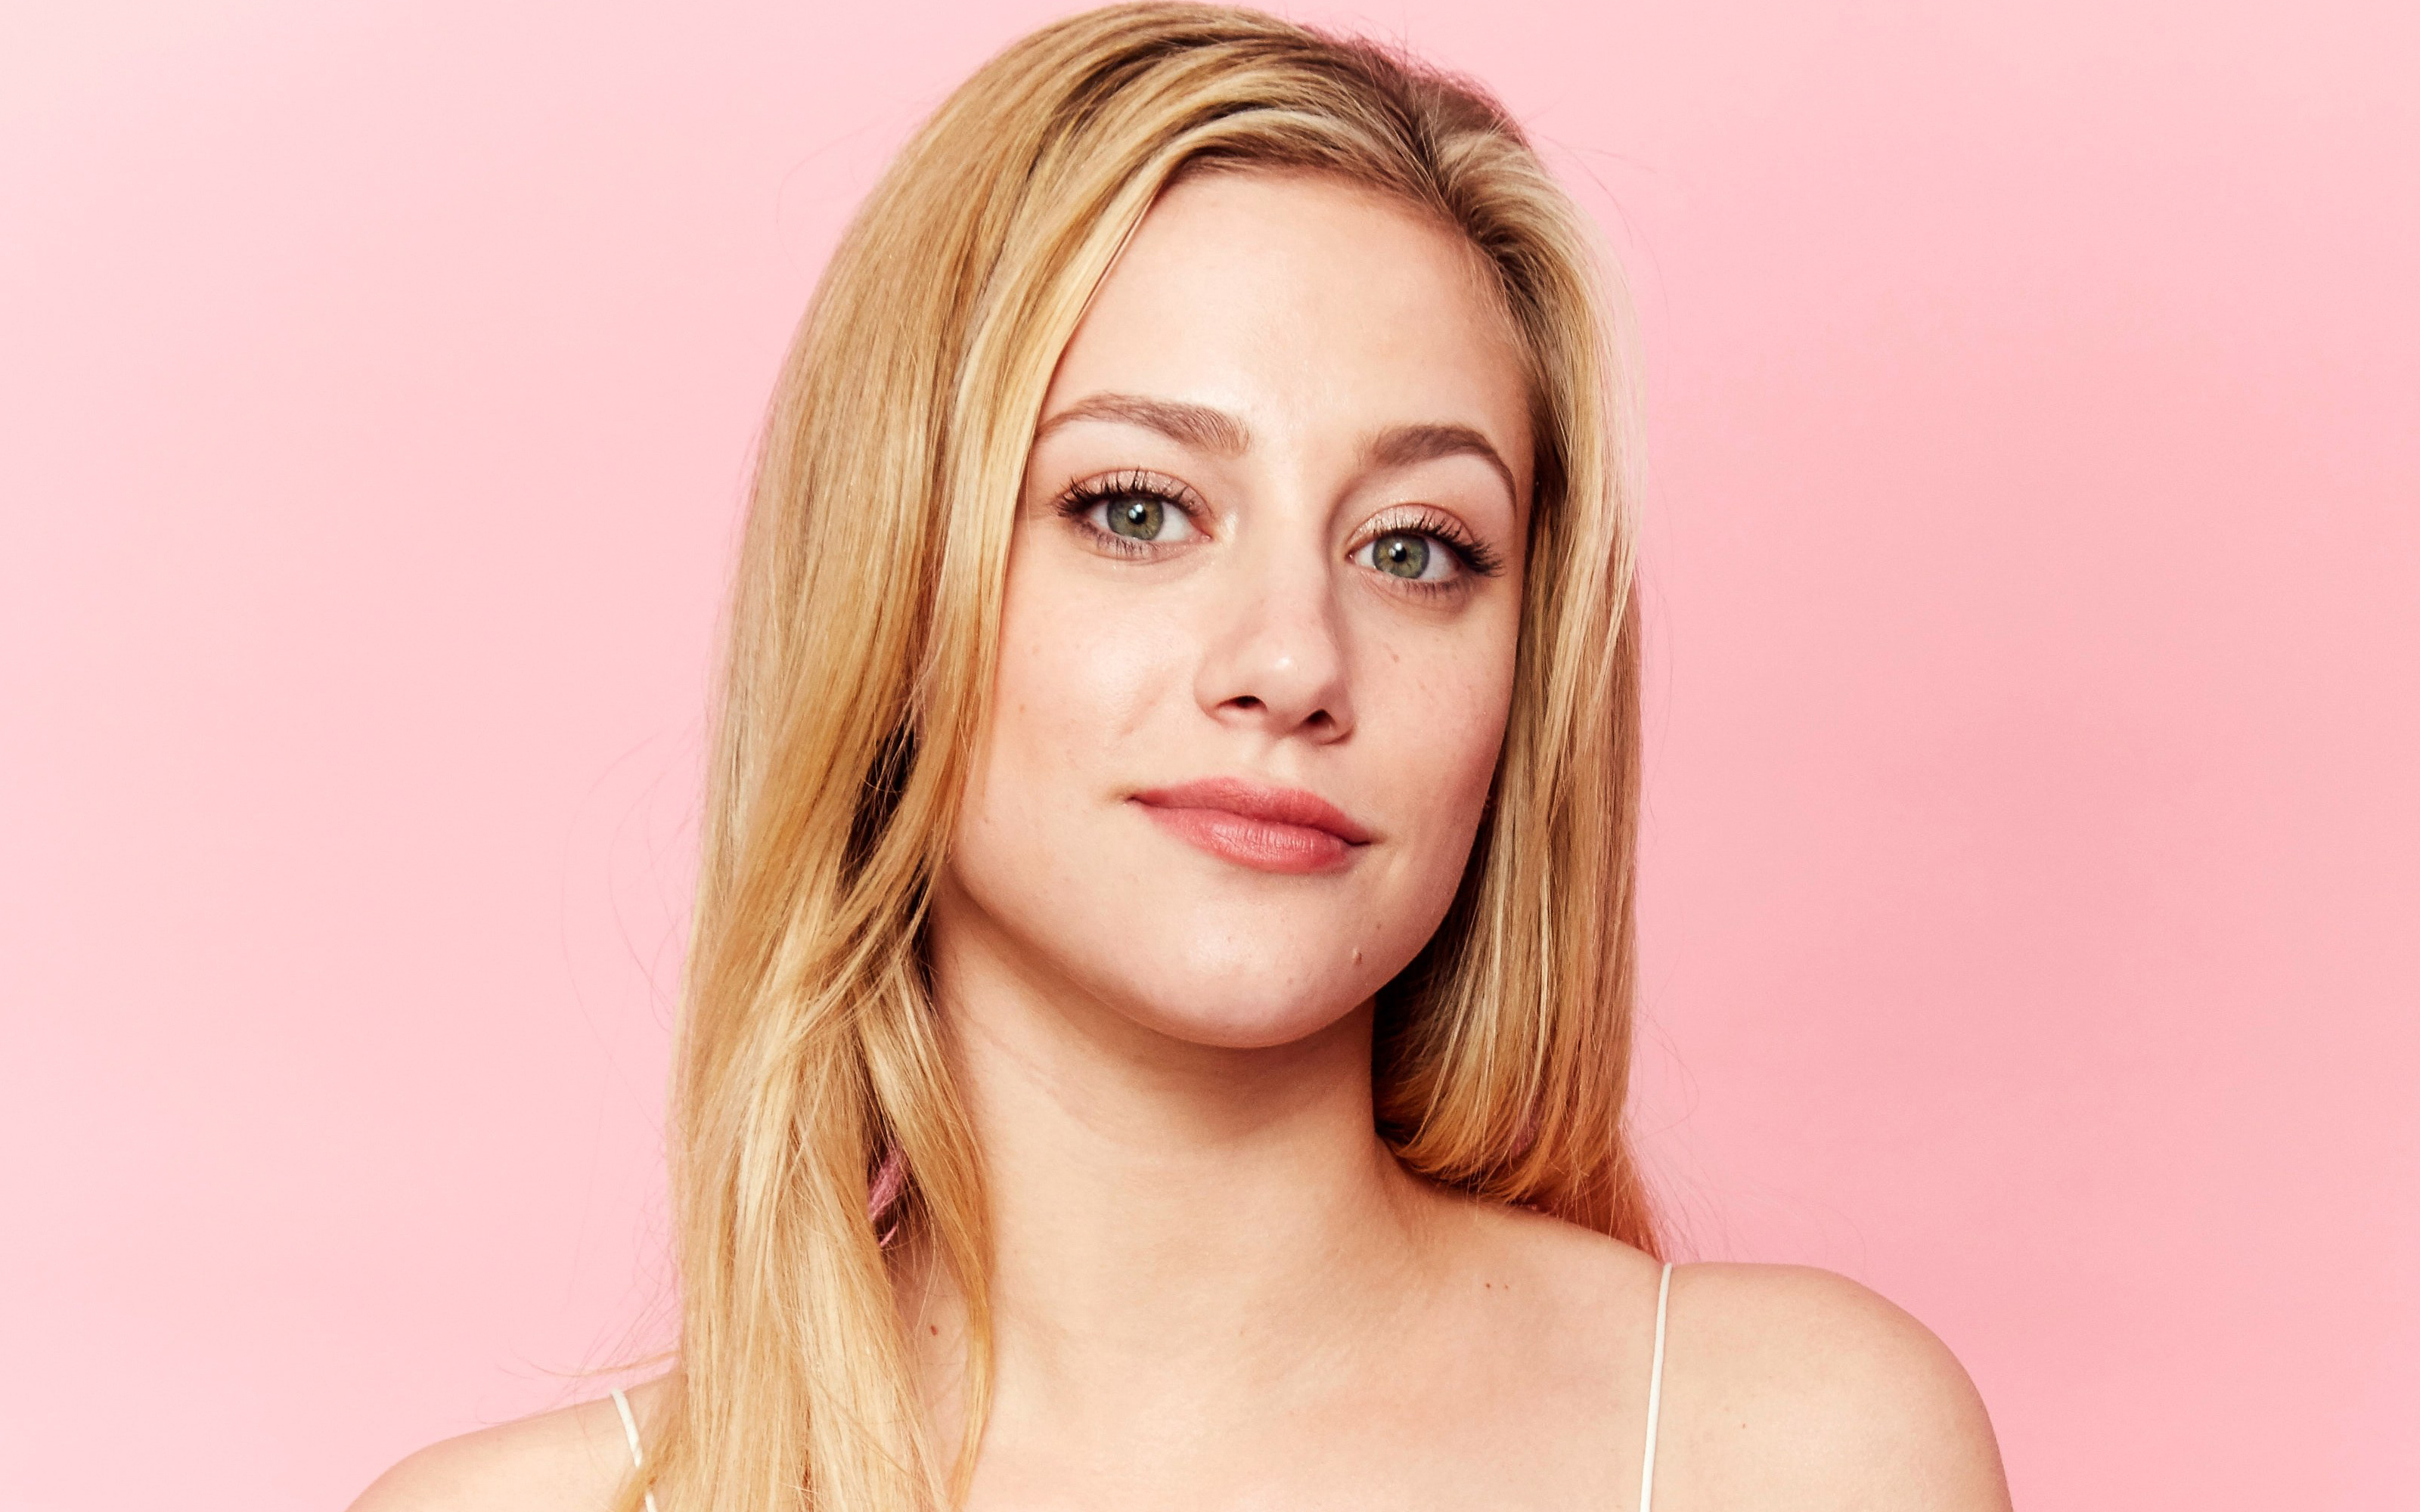 Lili Reinhart 2017 HD Wallpapers